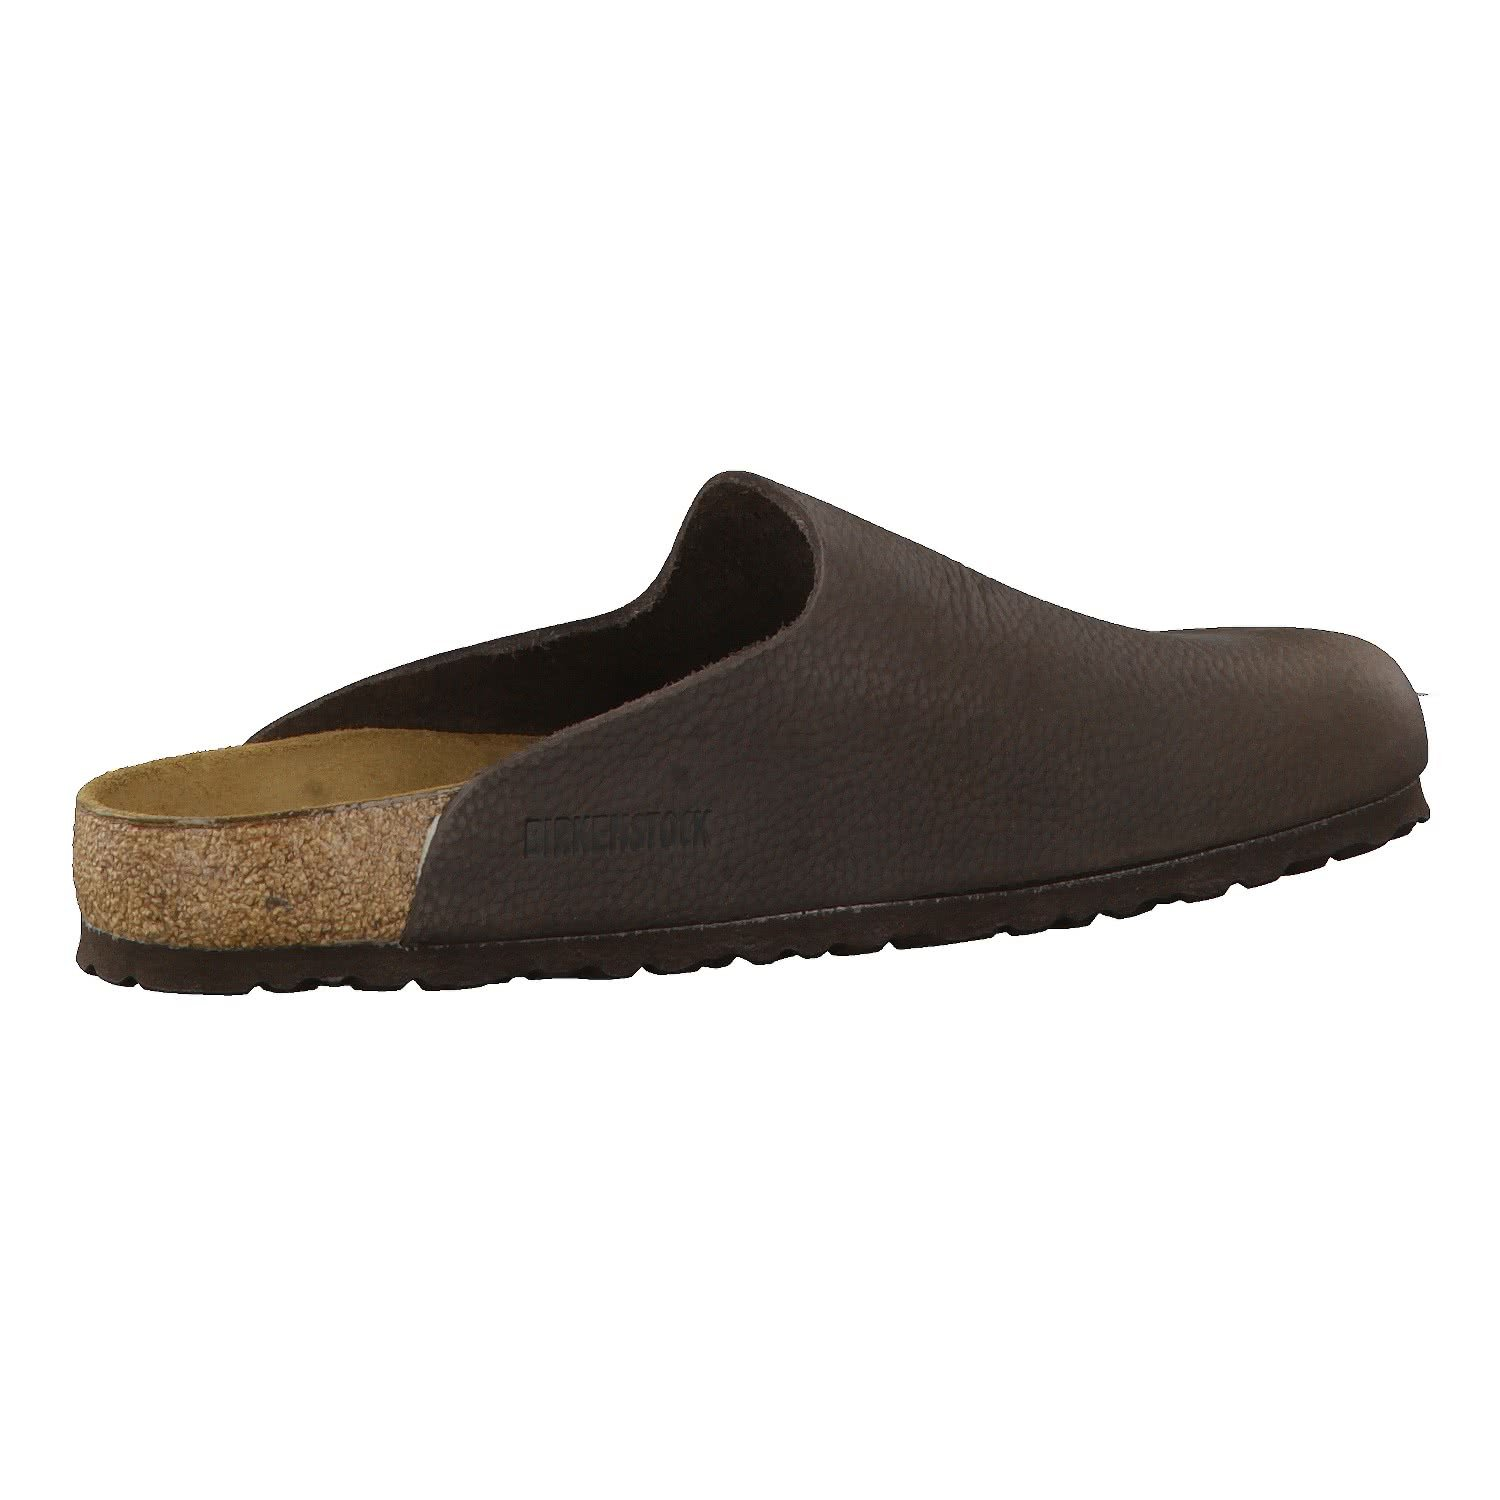 8ccc382cd83 Birkenstock Amsterdam NU Steer Chocolate  Amazon.co.uk  Shoes   Bags